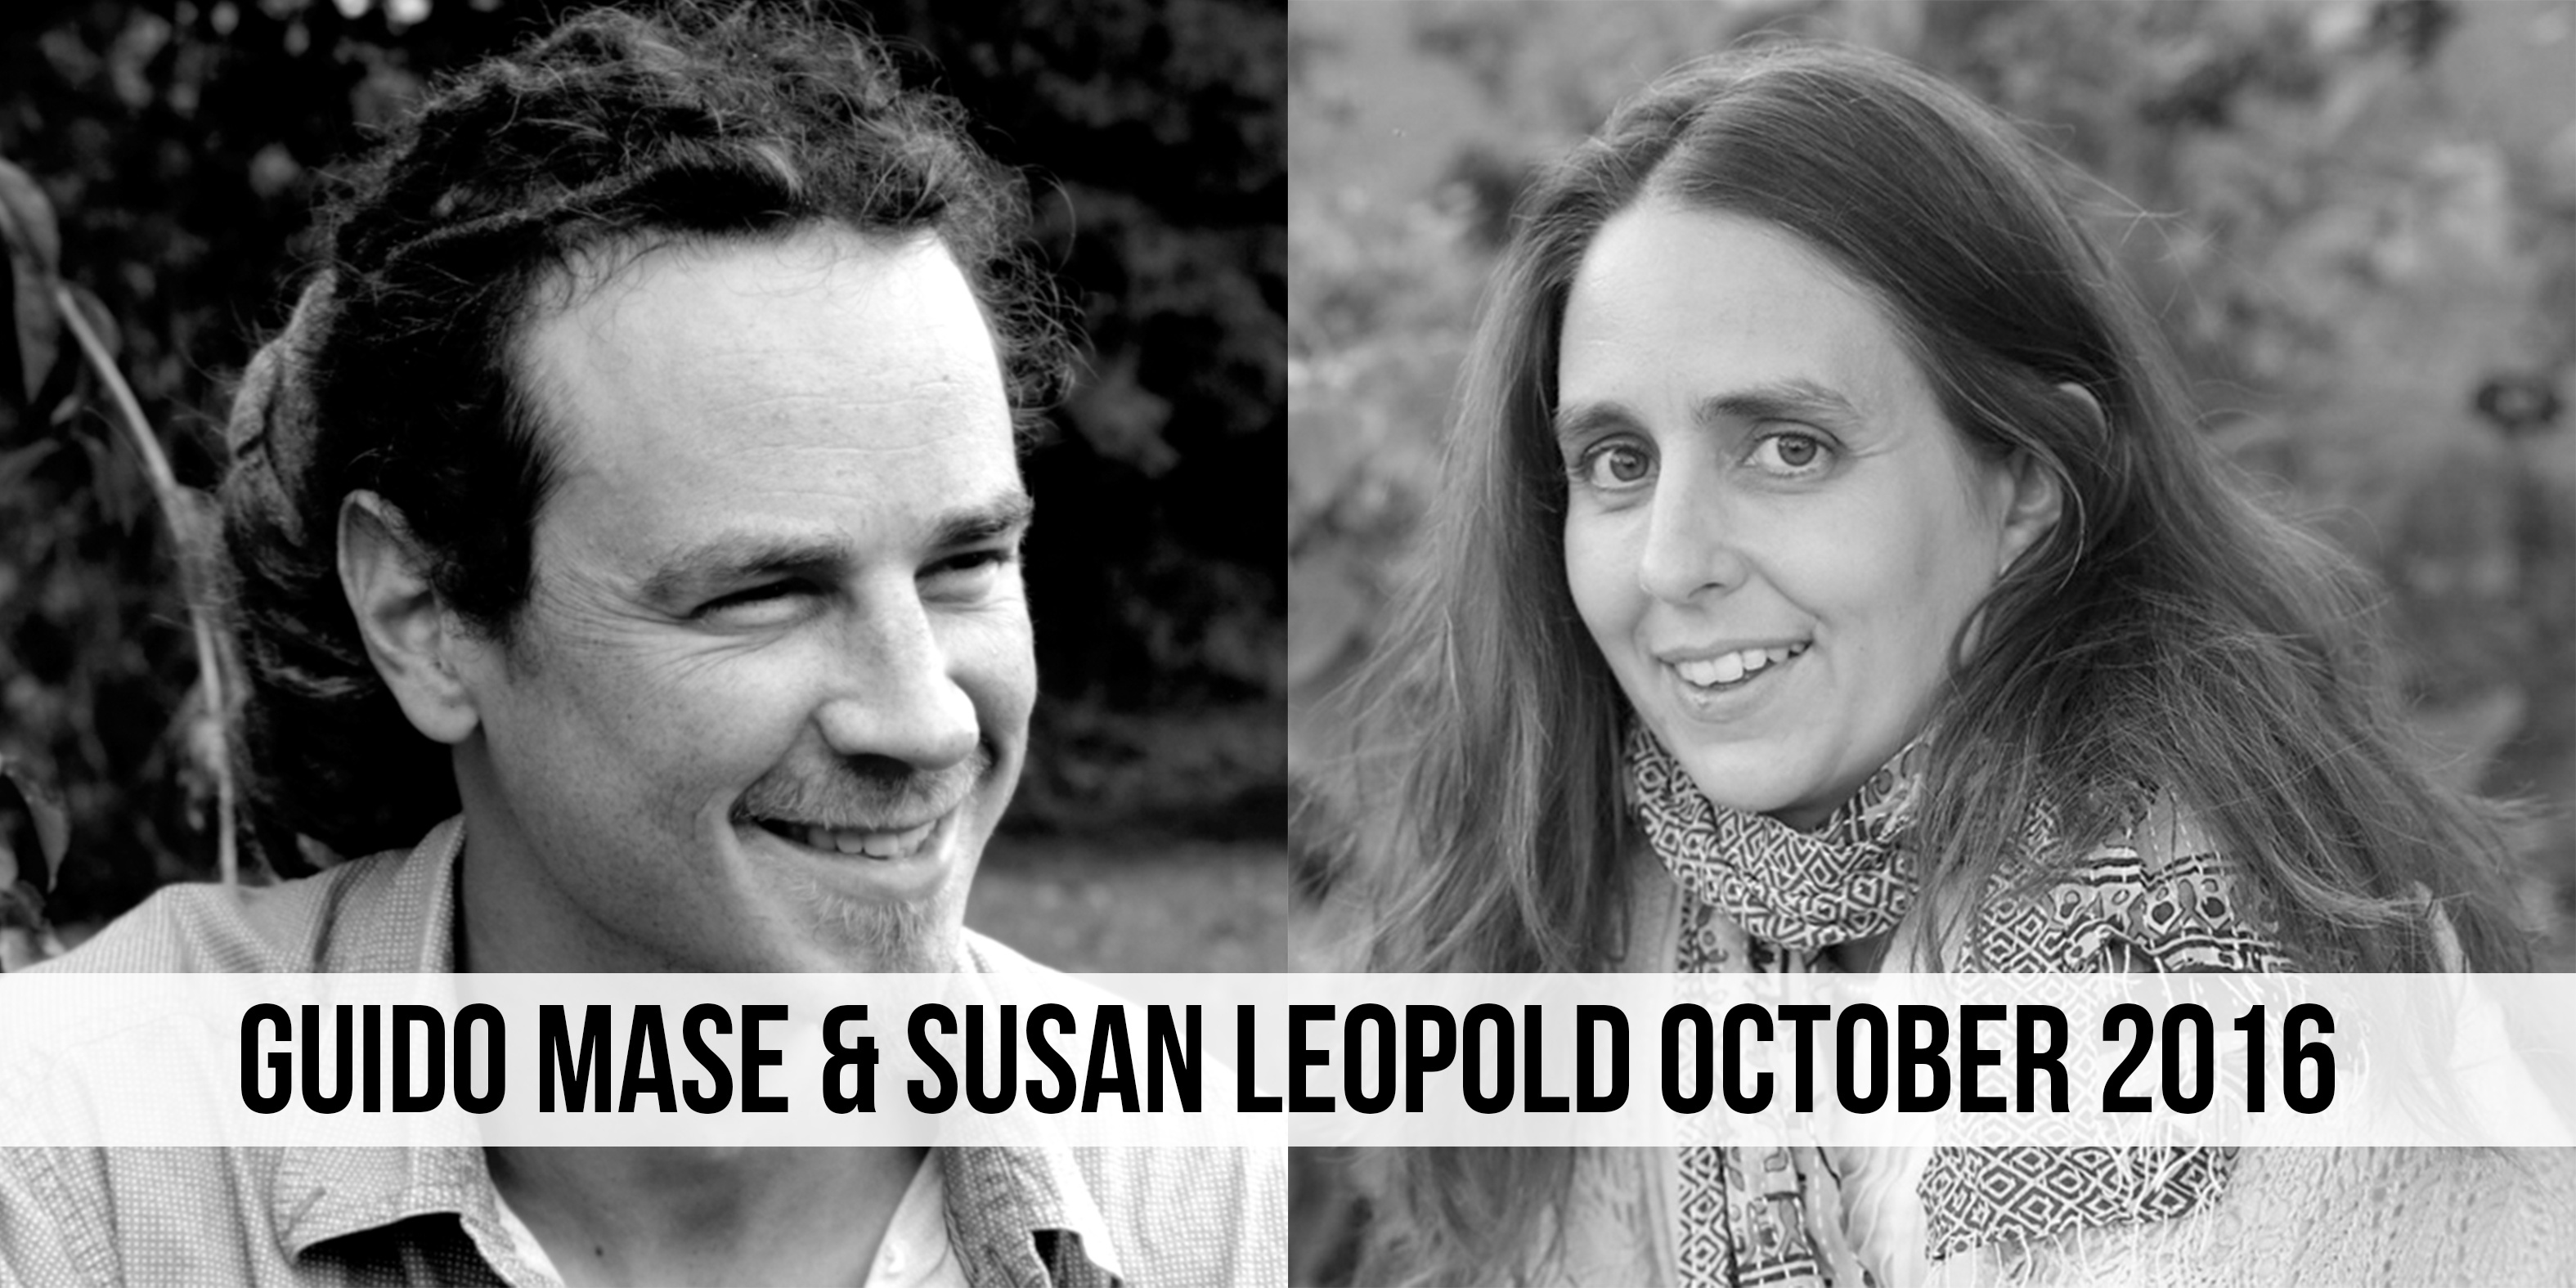 Guido Mase & Susan Leopold October 2016